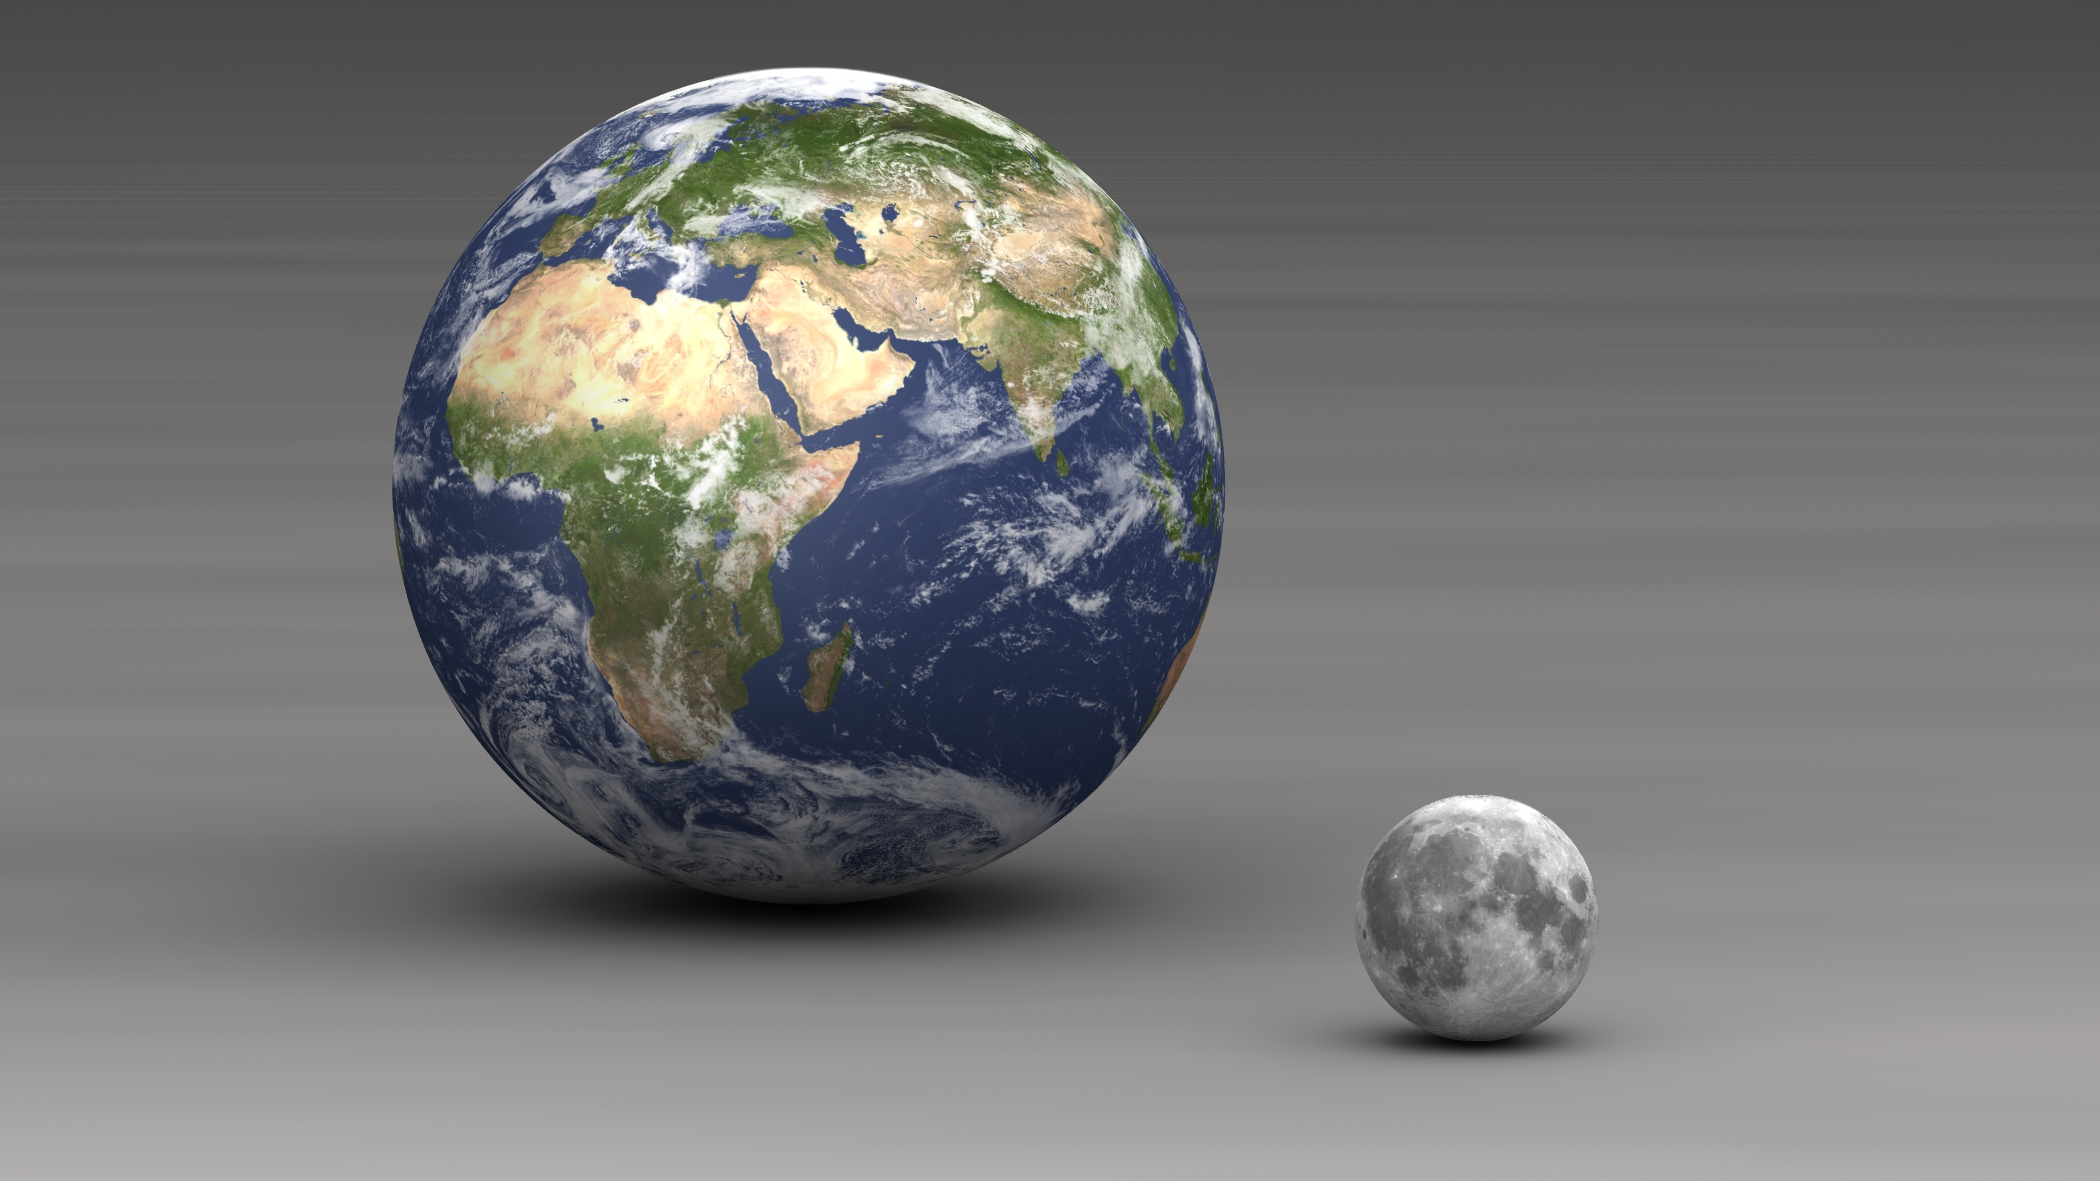 What is the size of the Earth compared to the moon? | Socratic